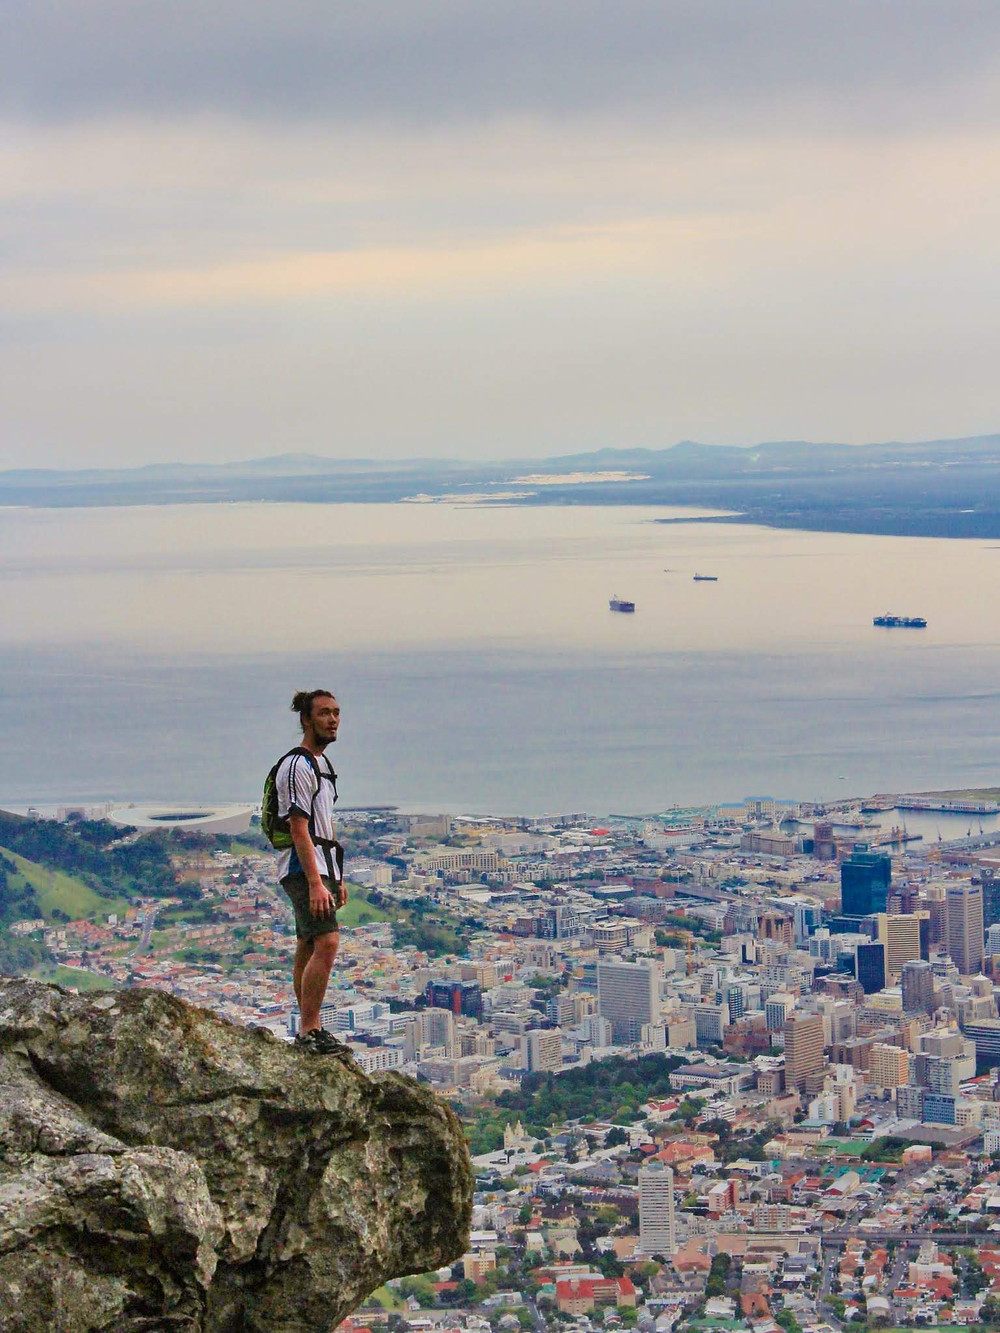 View over Cape Town from the front of Table Mountain.